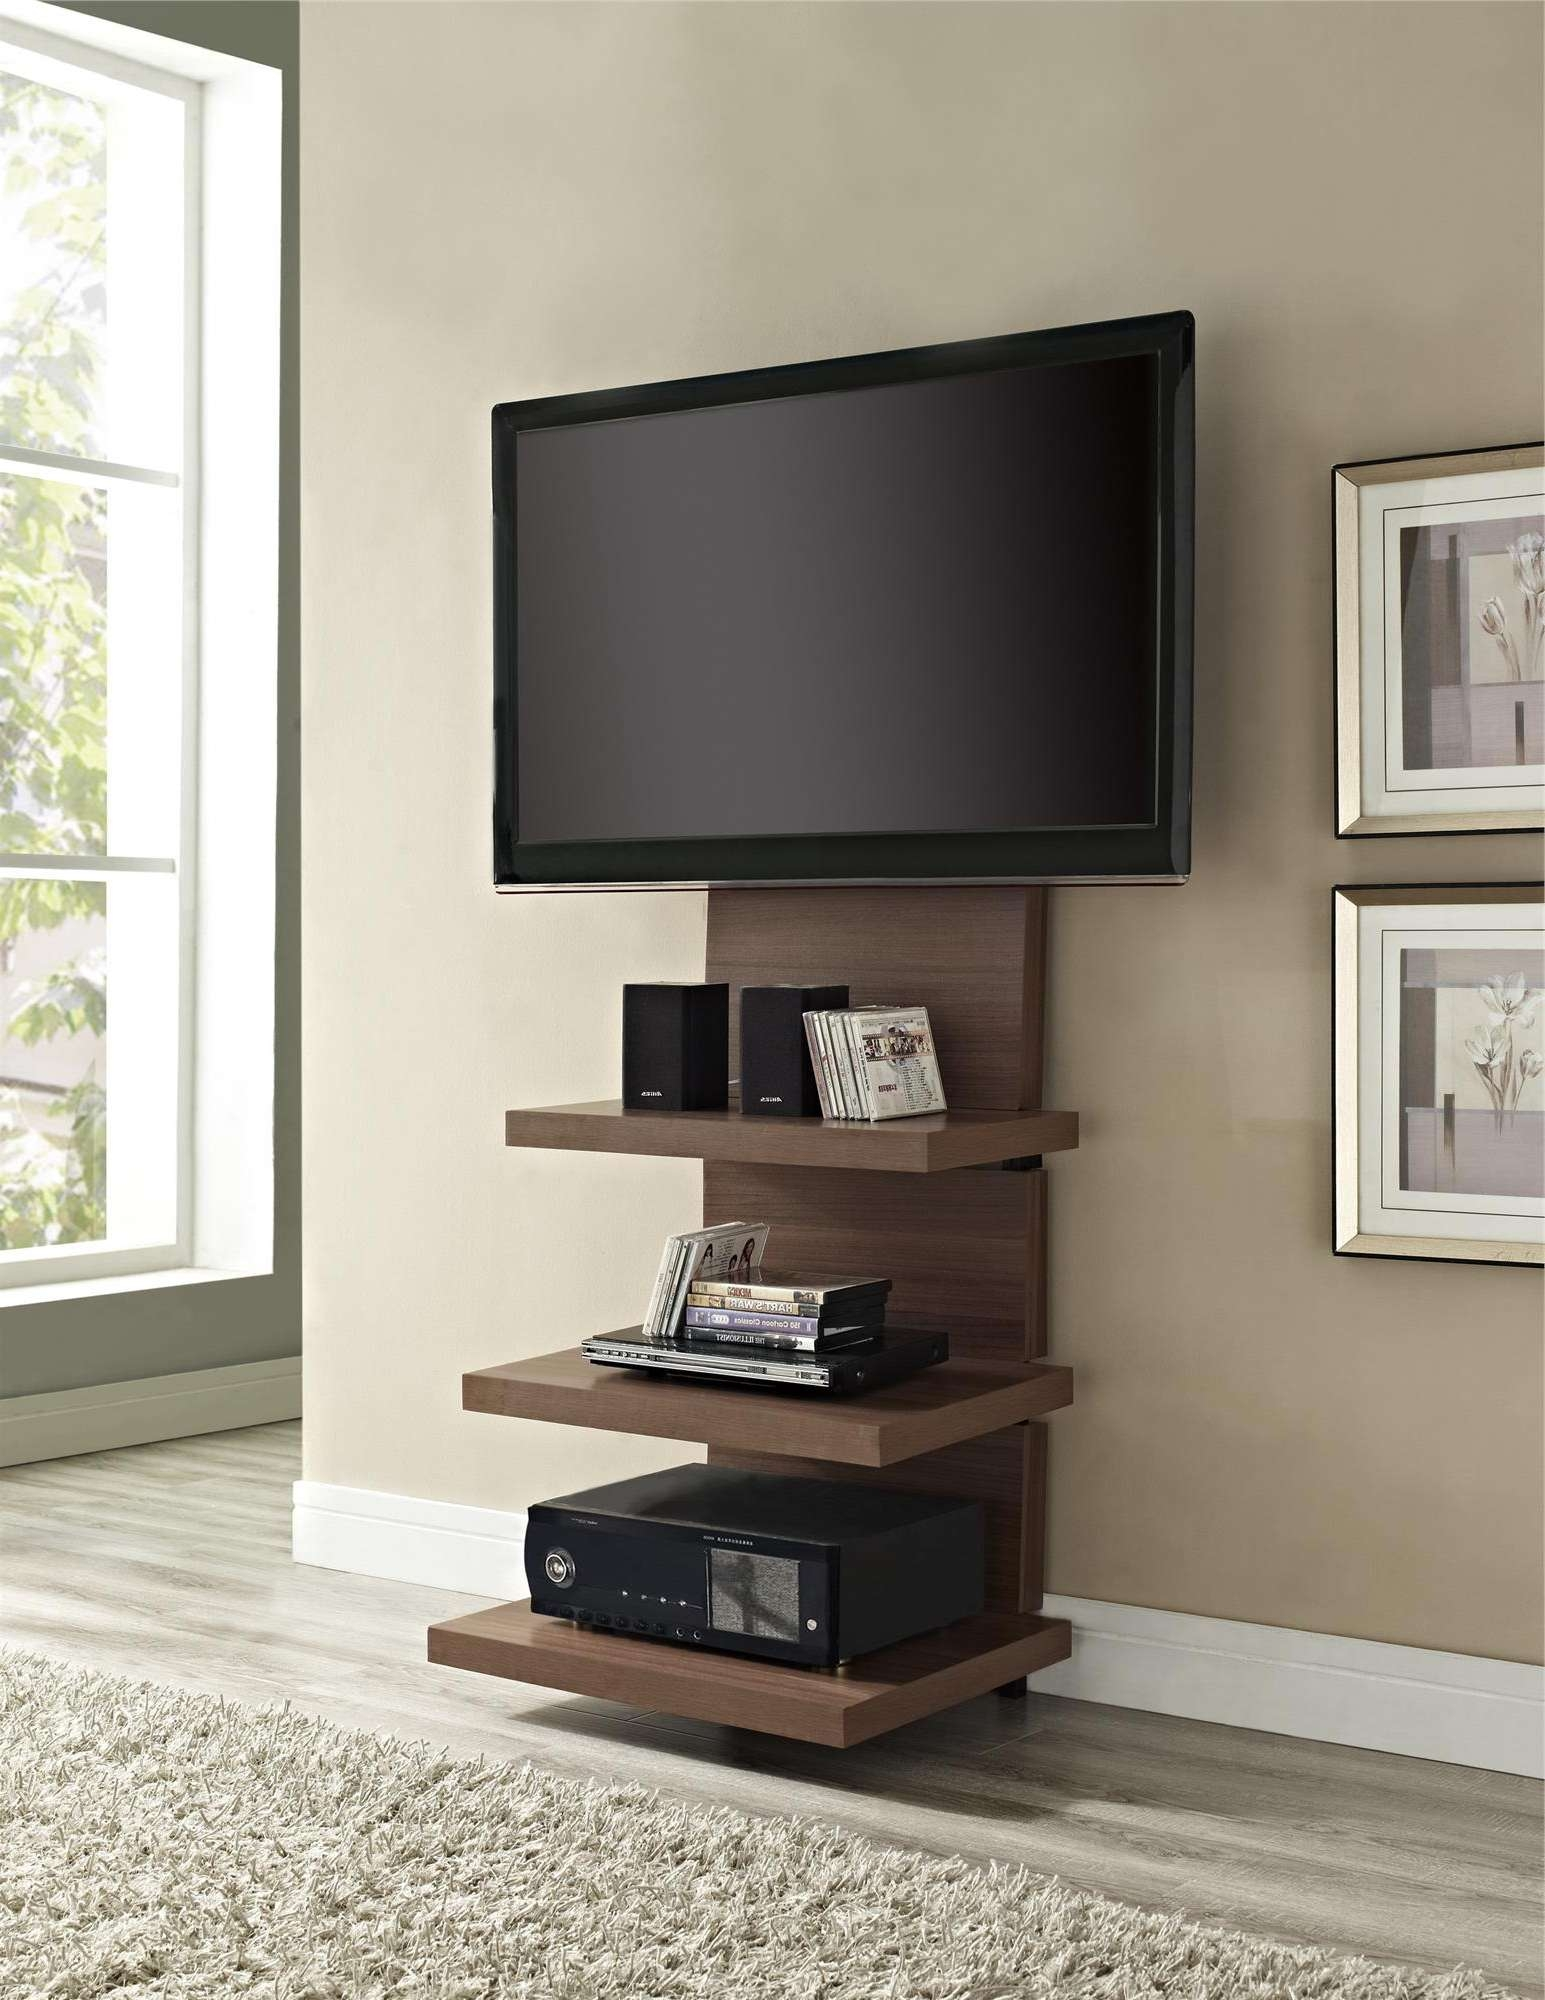 Cool Custom Modern Vertical Wood Tv Stands With Floating Display With Cool Tv Stands (View 4 of 15)